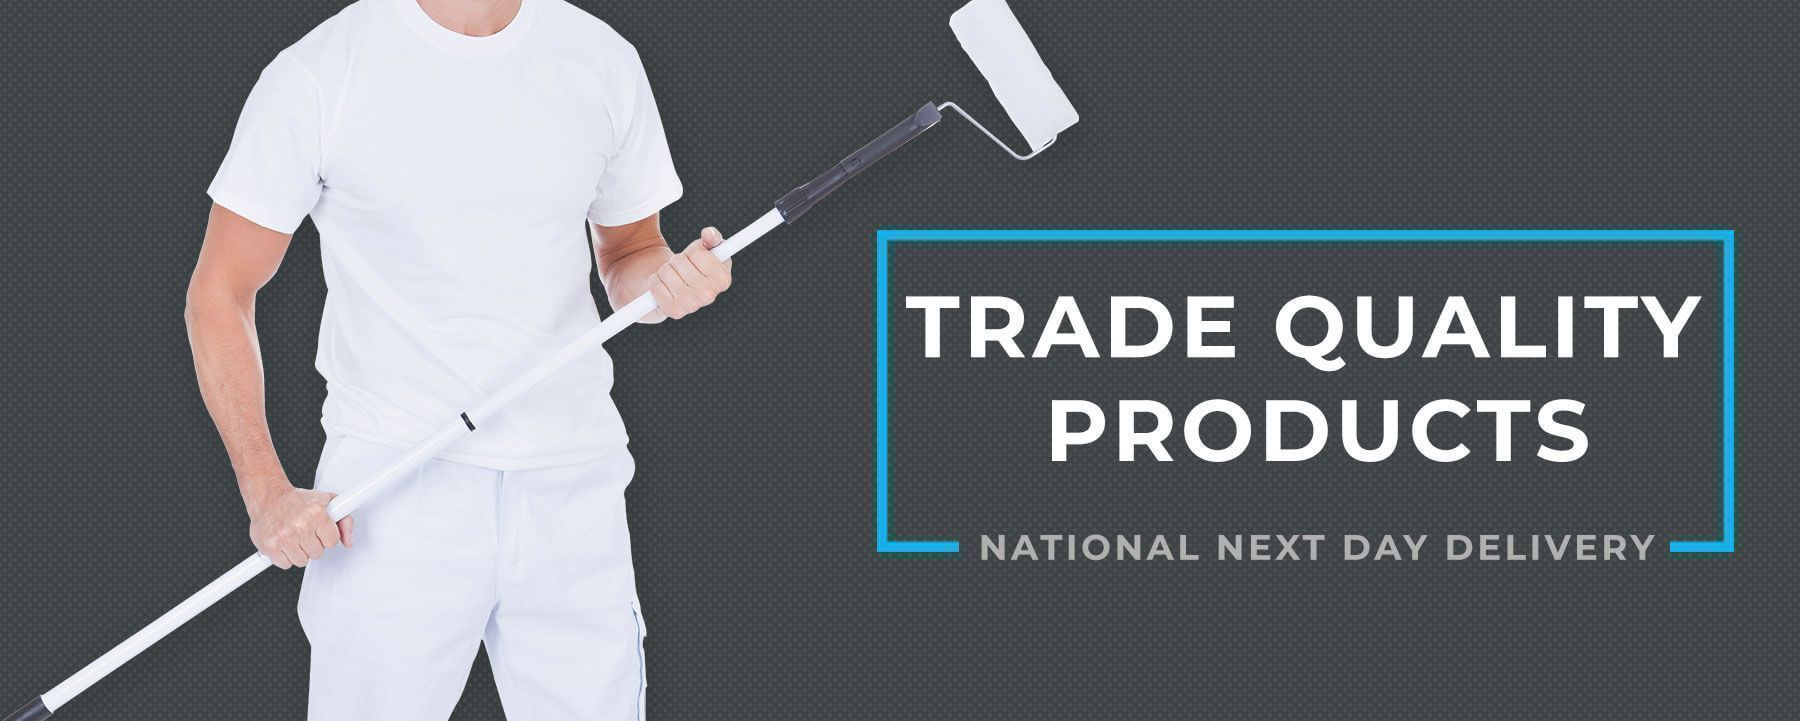 Trade Quality Products